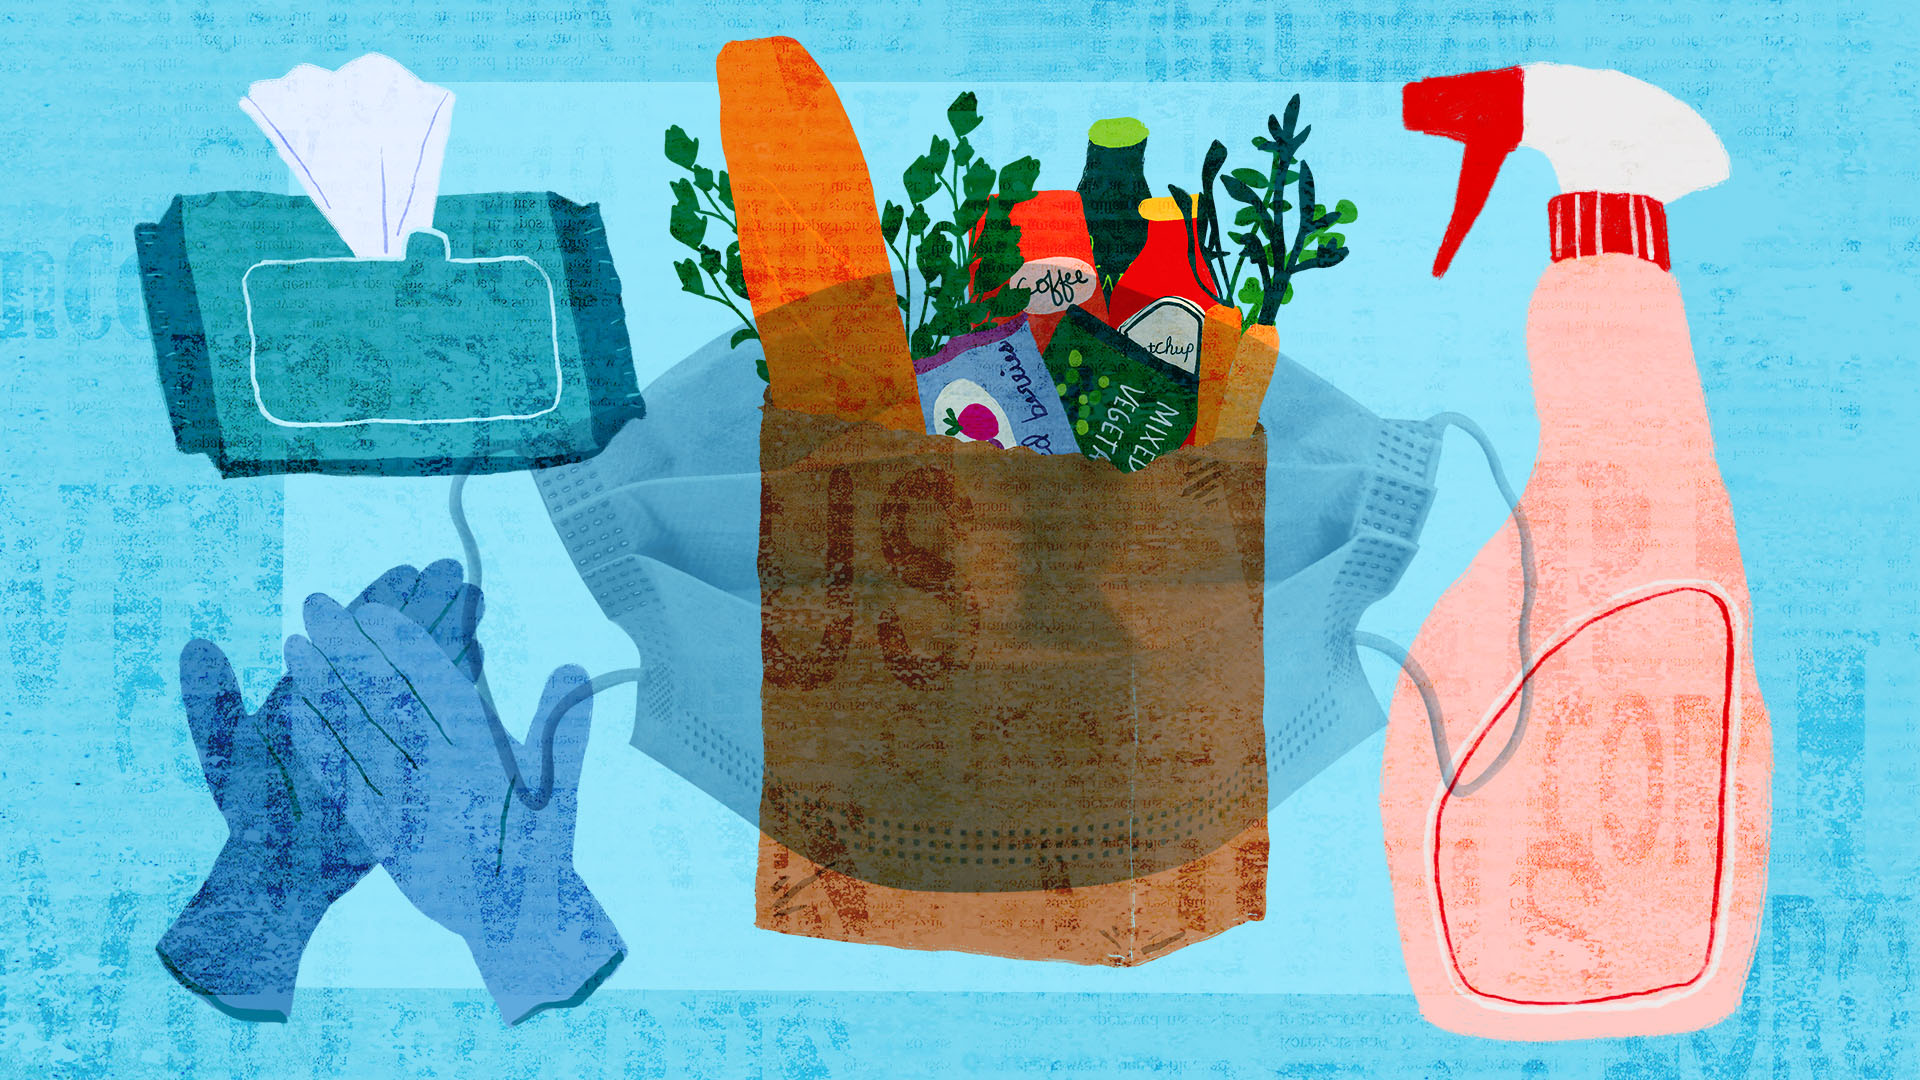 illustration of cleaning supplies, mask, gloves and groceries on a blue background